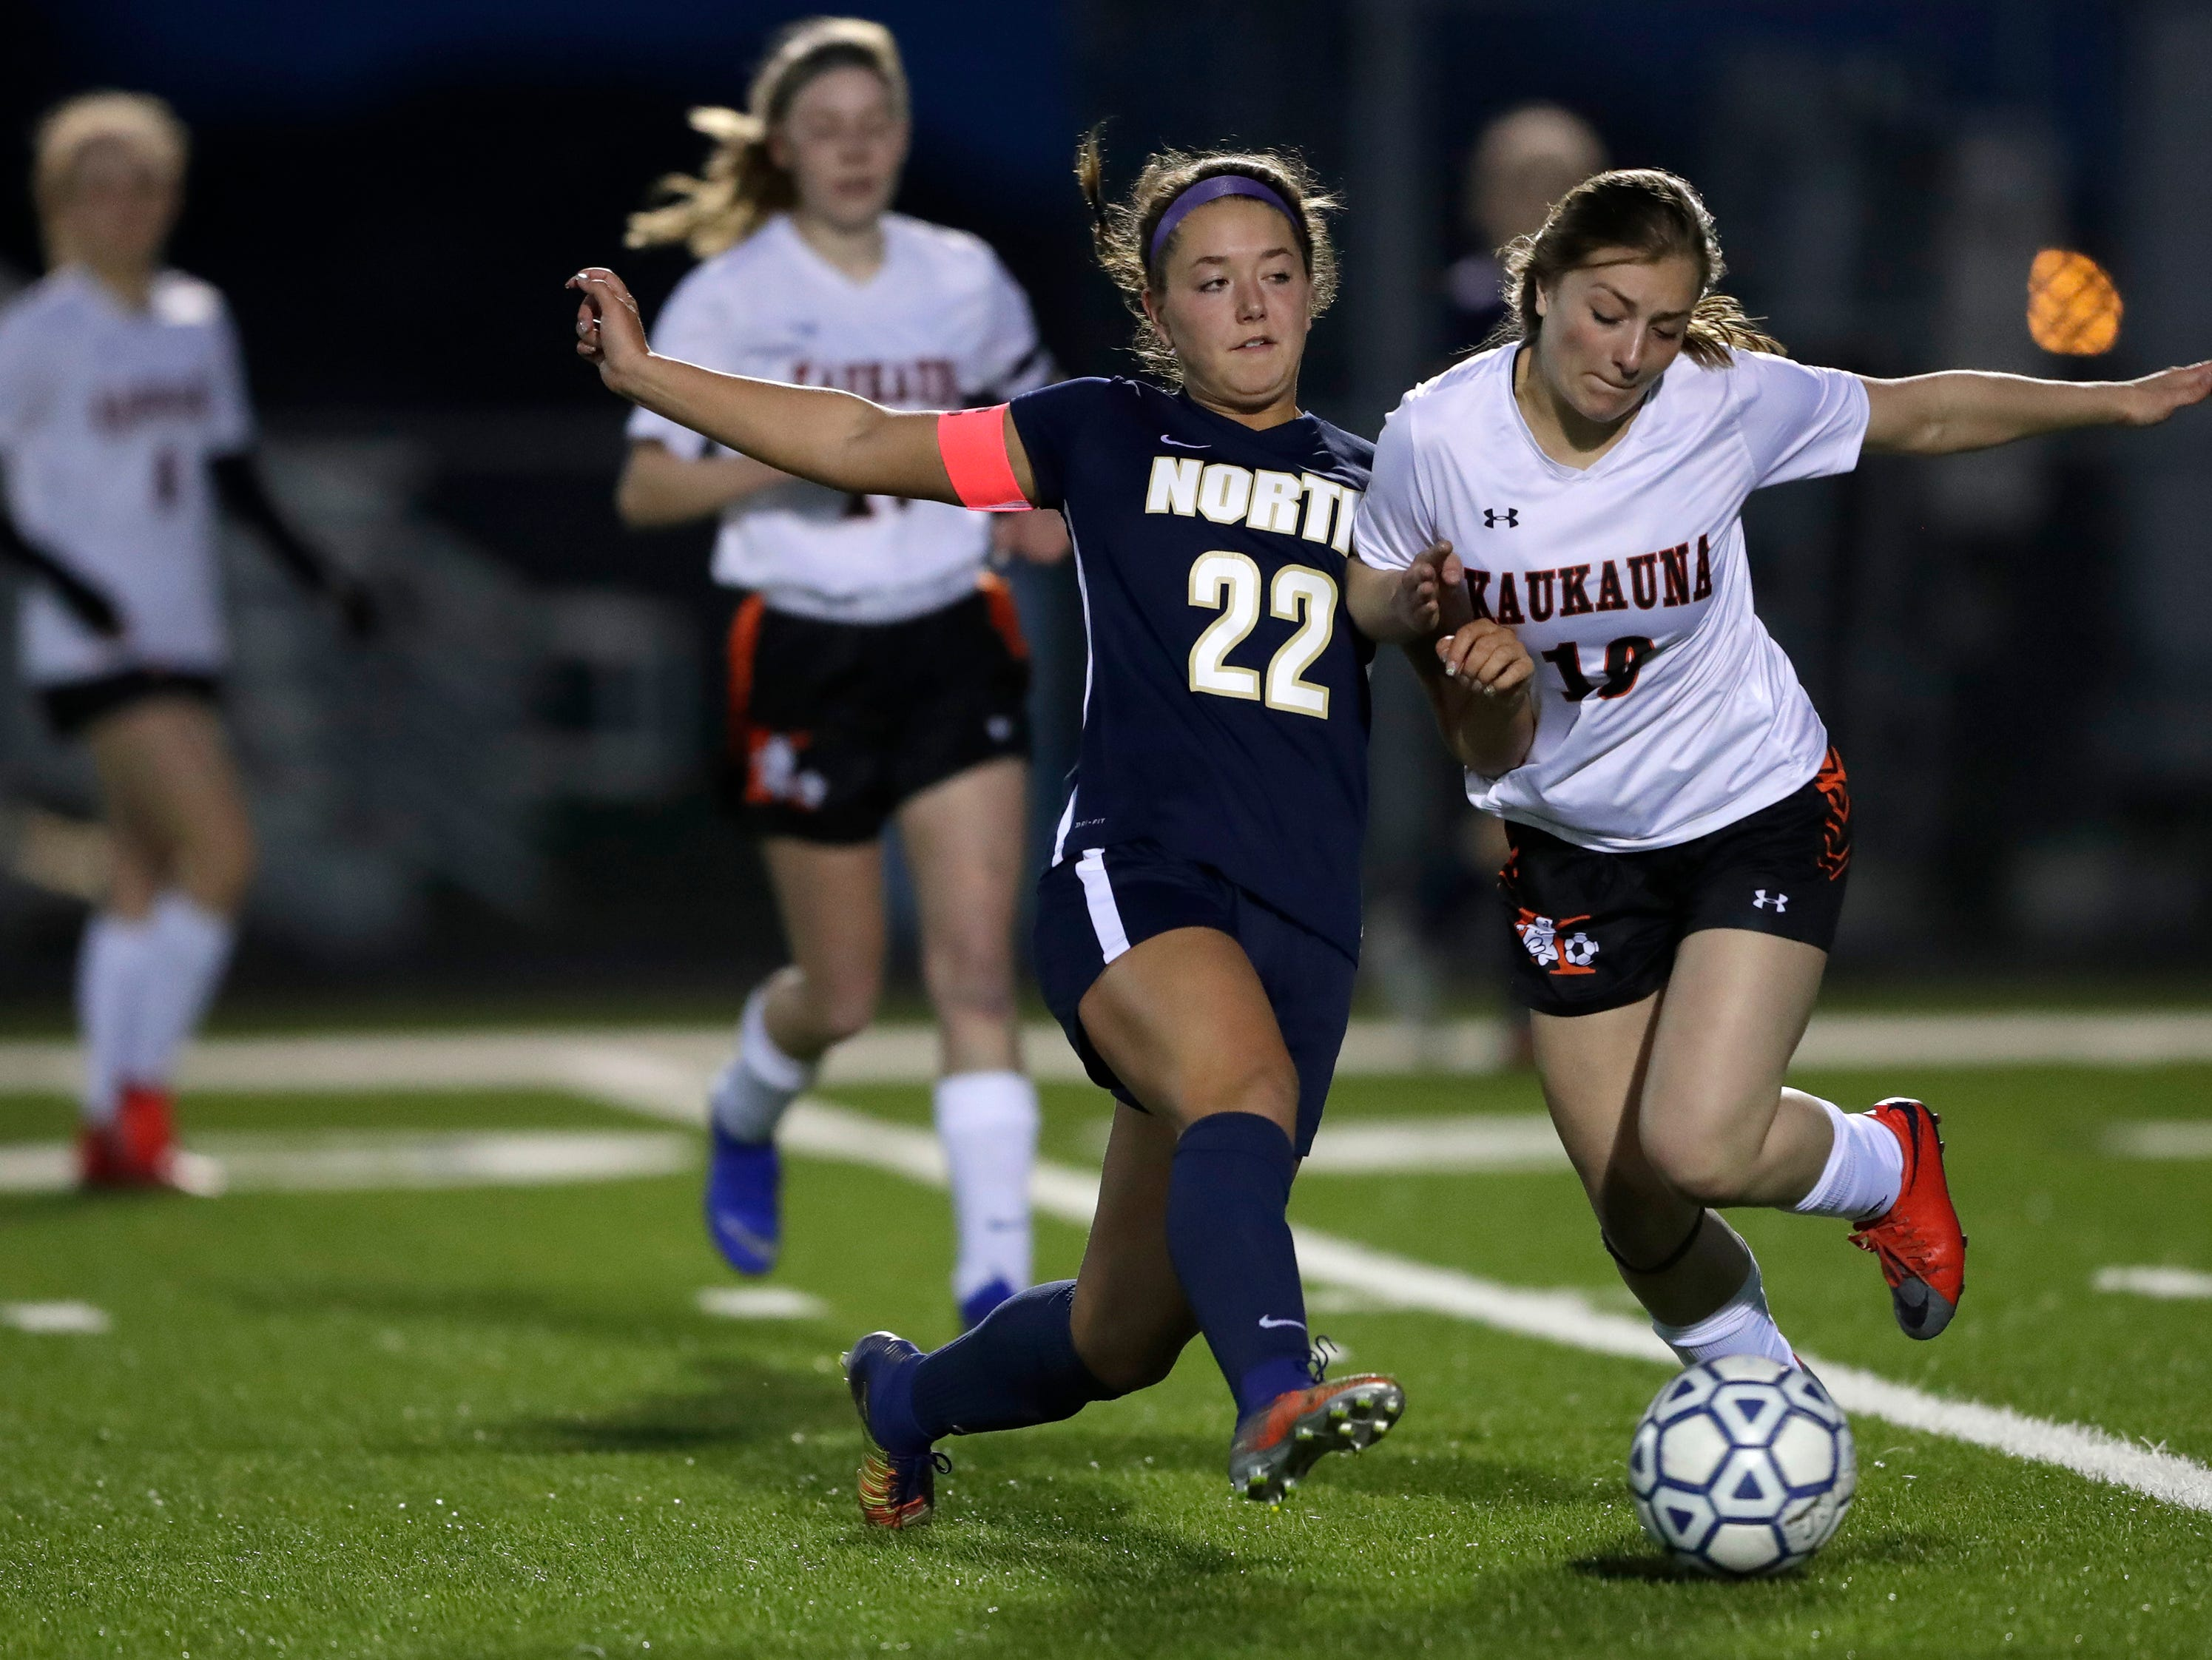 Appleton North High School's Taylor Tomoda (22) passes the ball against Kaukauna High School's Reece Gellerman (10) during their girls soccer game Tuesday, April 23, 2019, in Appleton, Wis. 